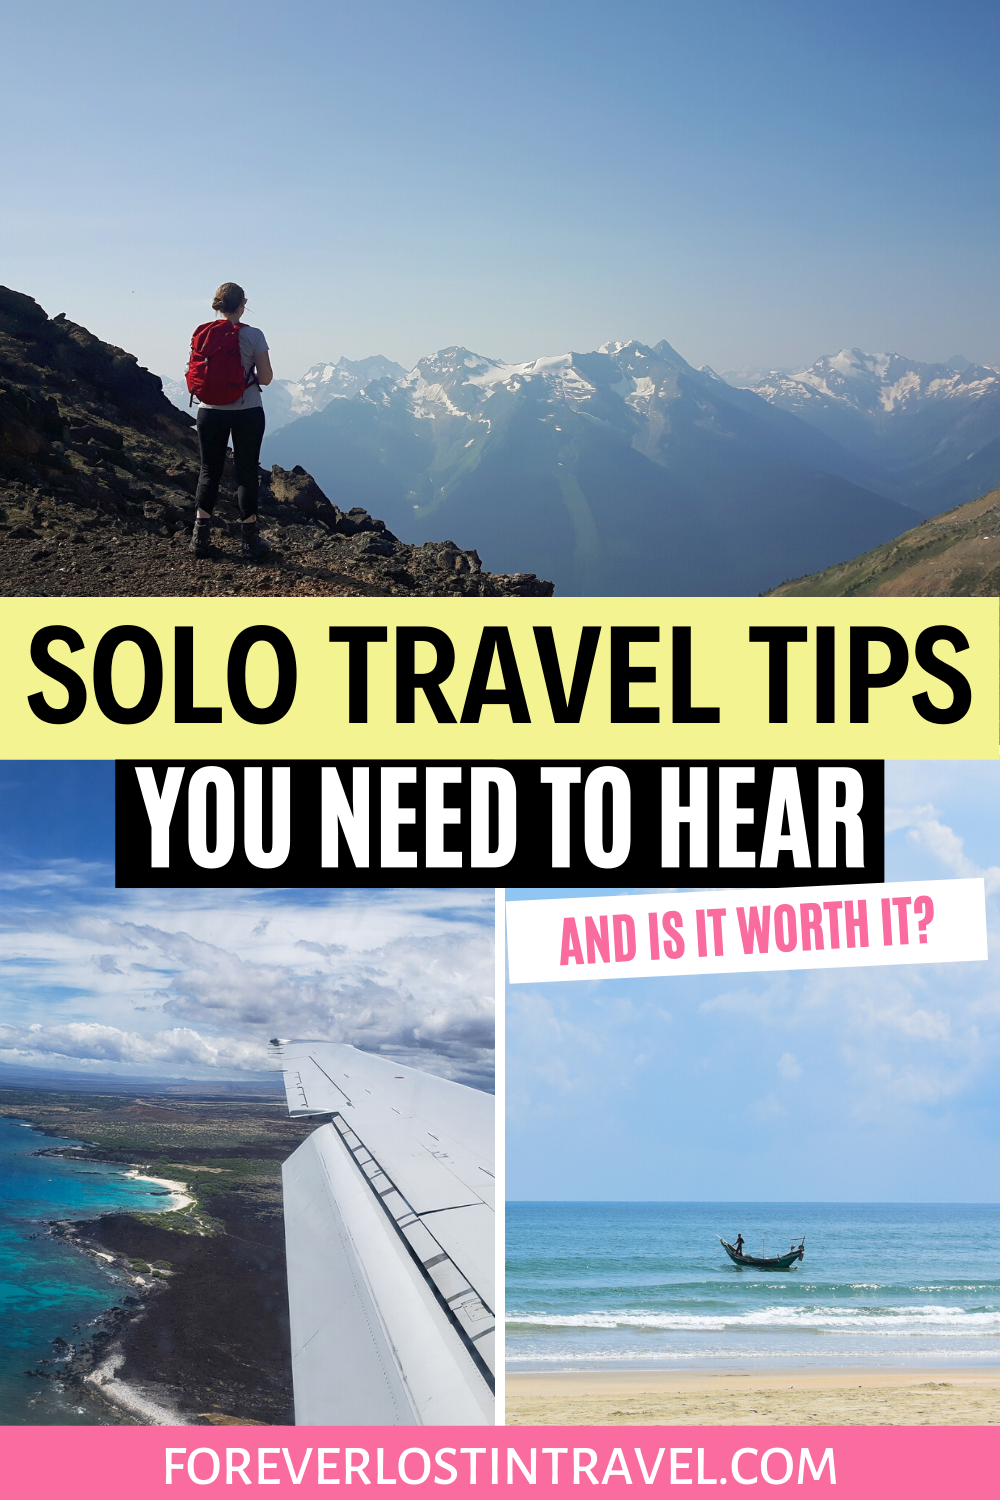 We all think about traveling solo, but are you prepared? What do you need to know? There's a lot to think about. Here are some of the top solo travel tips from someone who has done a lot of solo travel, including some you might not think about #solotravel #travel #foreverlostintravel #solofemaletravel #traveltips #travelguide